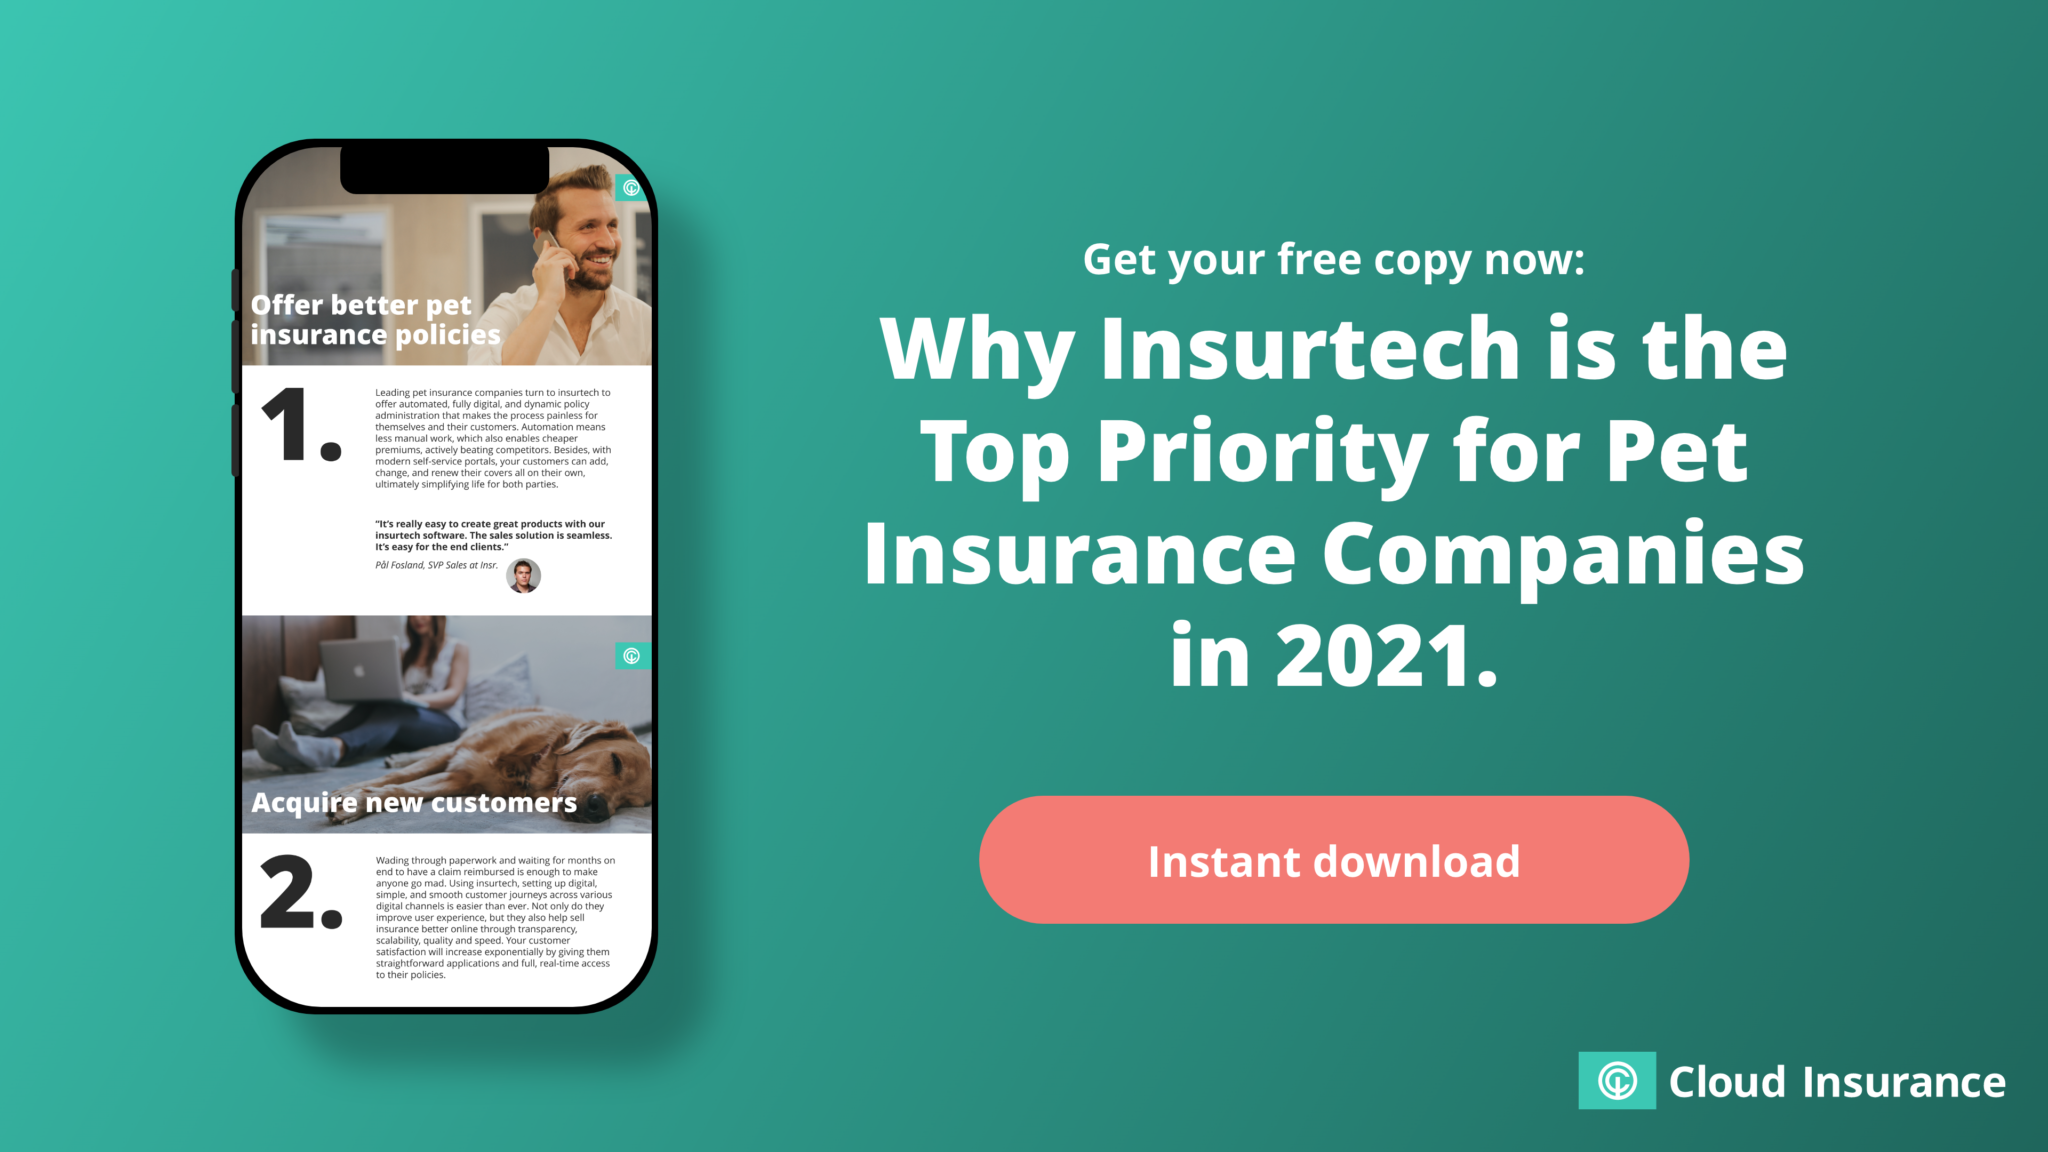 Why insirtech is the top priority for pet insurance companies in 2021